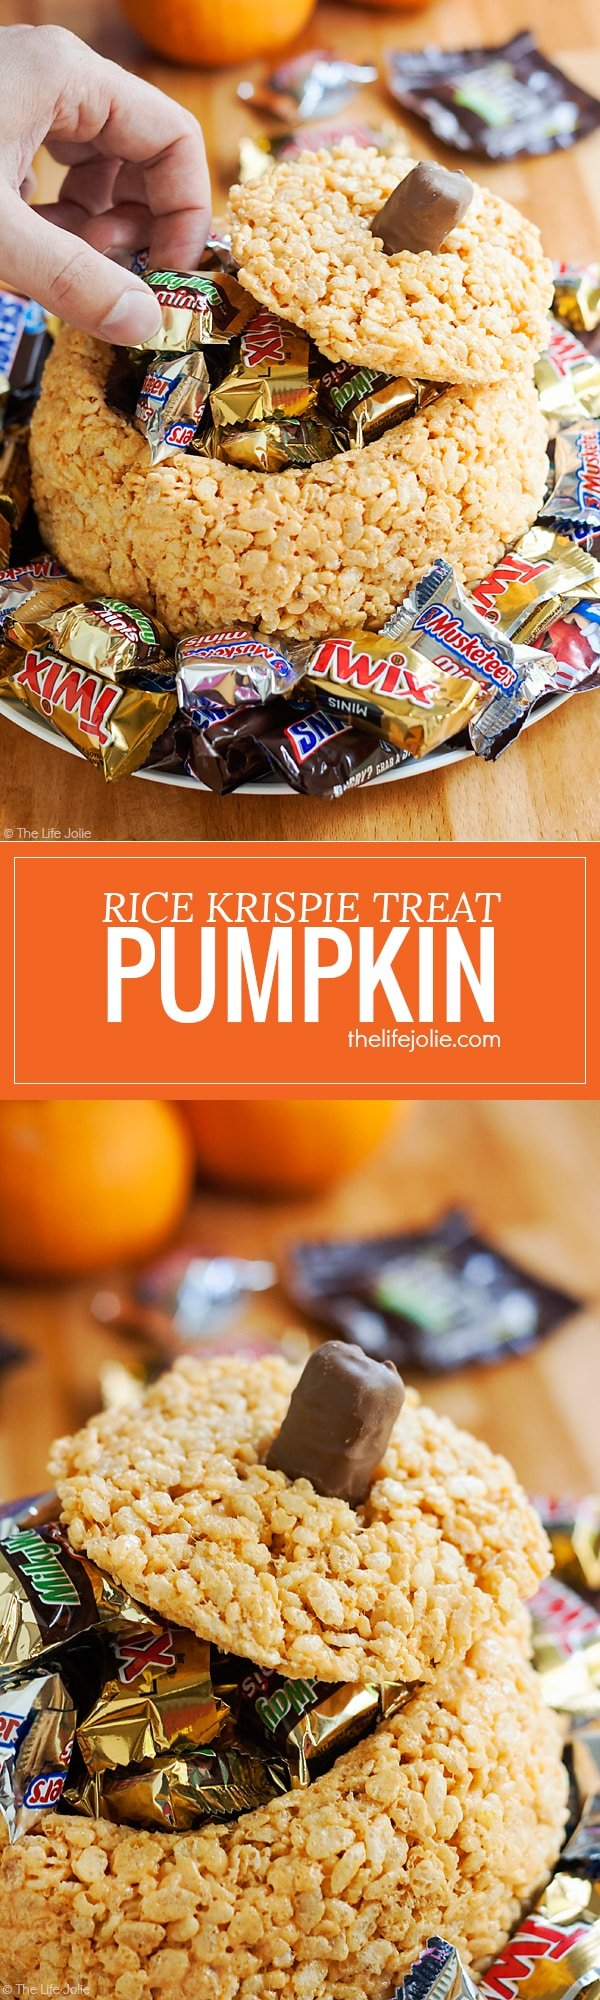 This Rice Krispie Treat Pumpkin is the perfect addition to your holiday table. It's an easy, kid friendly dessert that looks awesome filled with candy and is so much fun for a Halloween party or Thanksgiving!